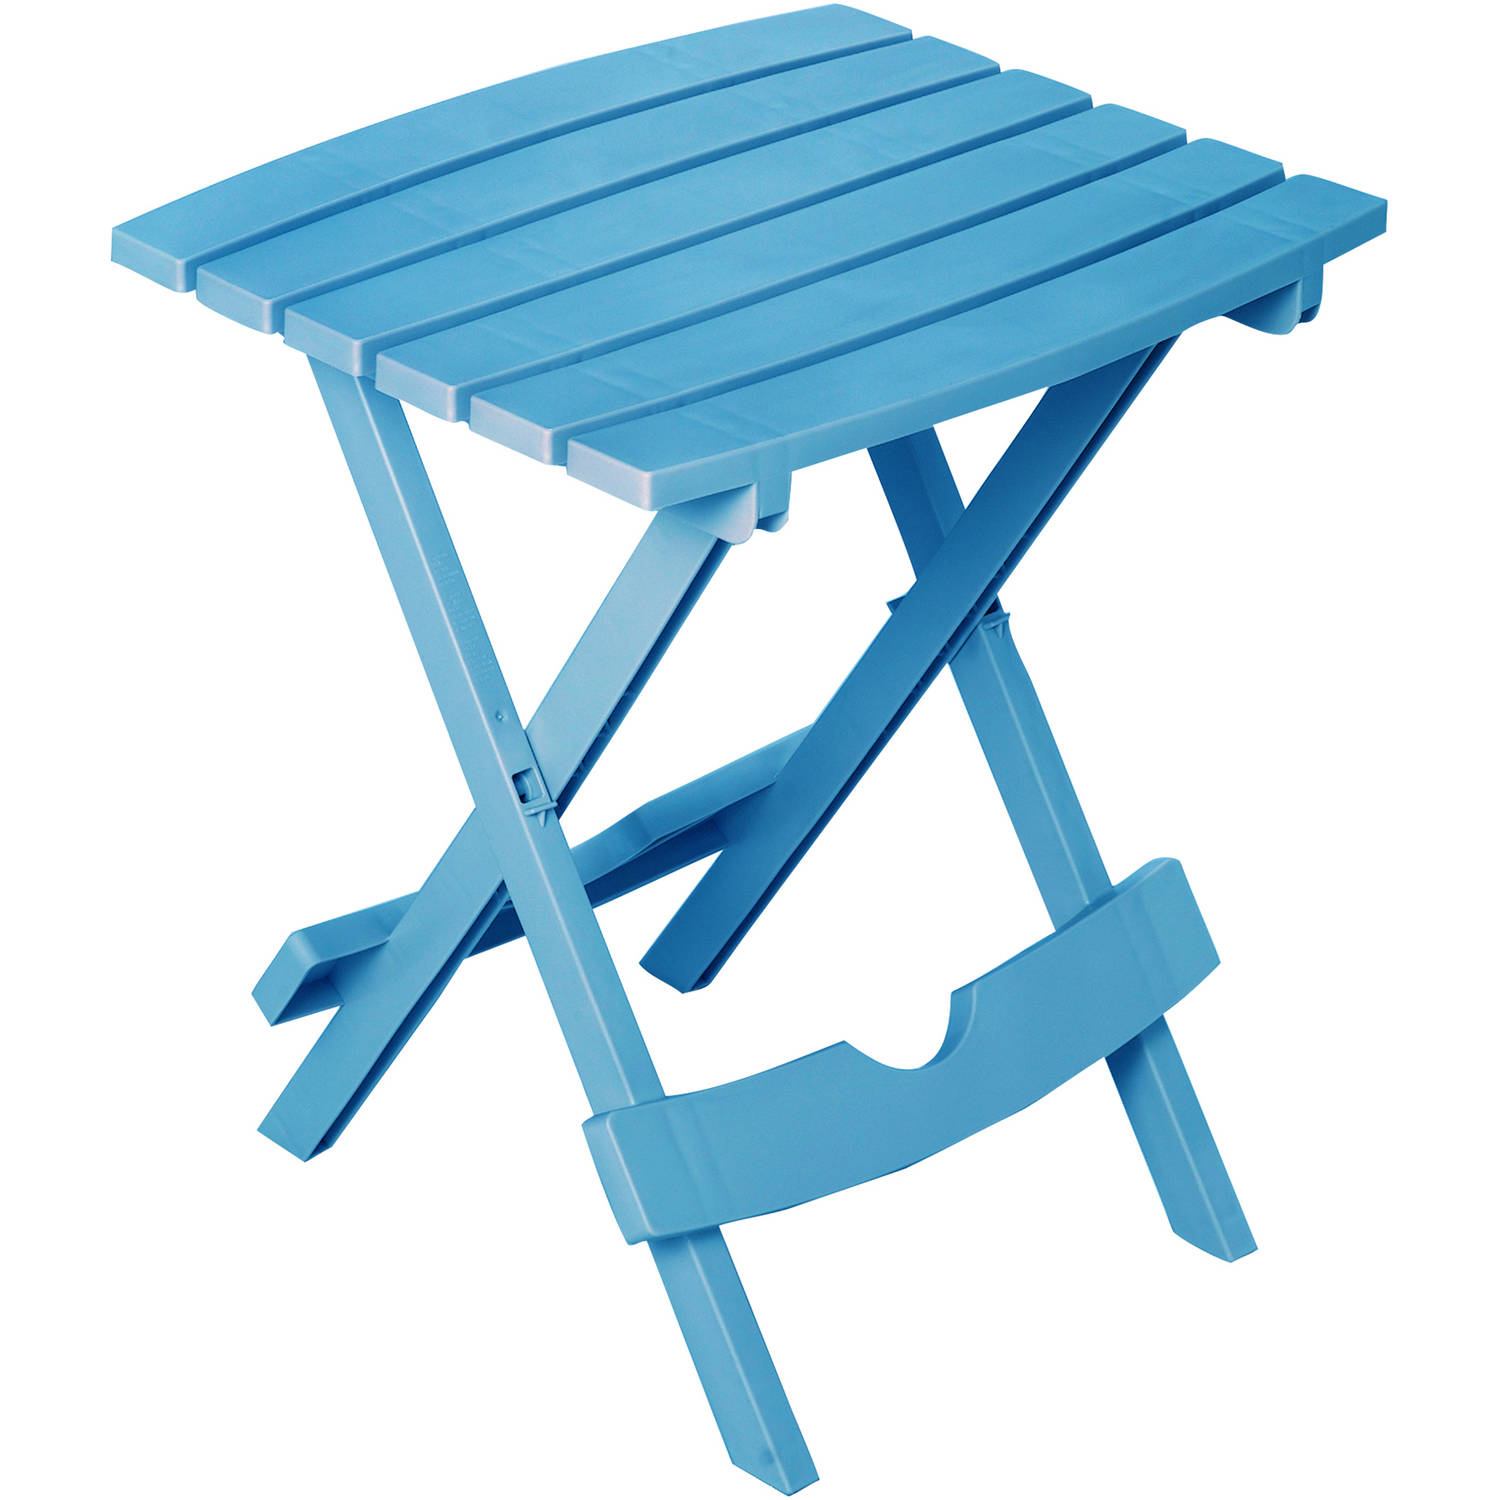 Adams Manufacturing Quik-Fold Side Table, Pool Blue